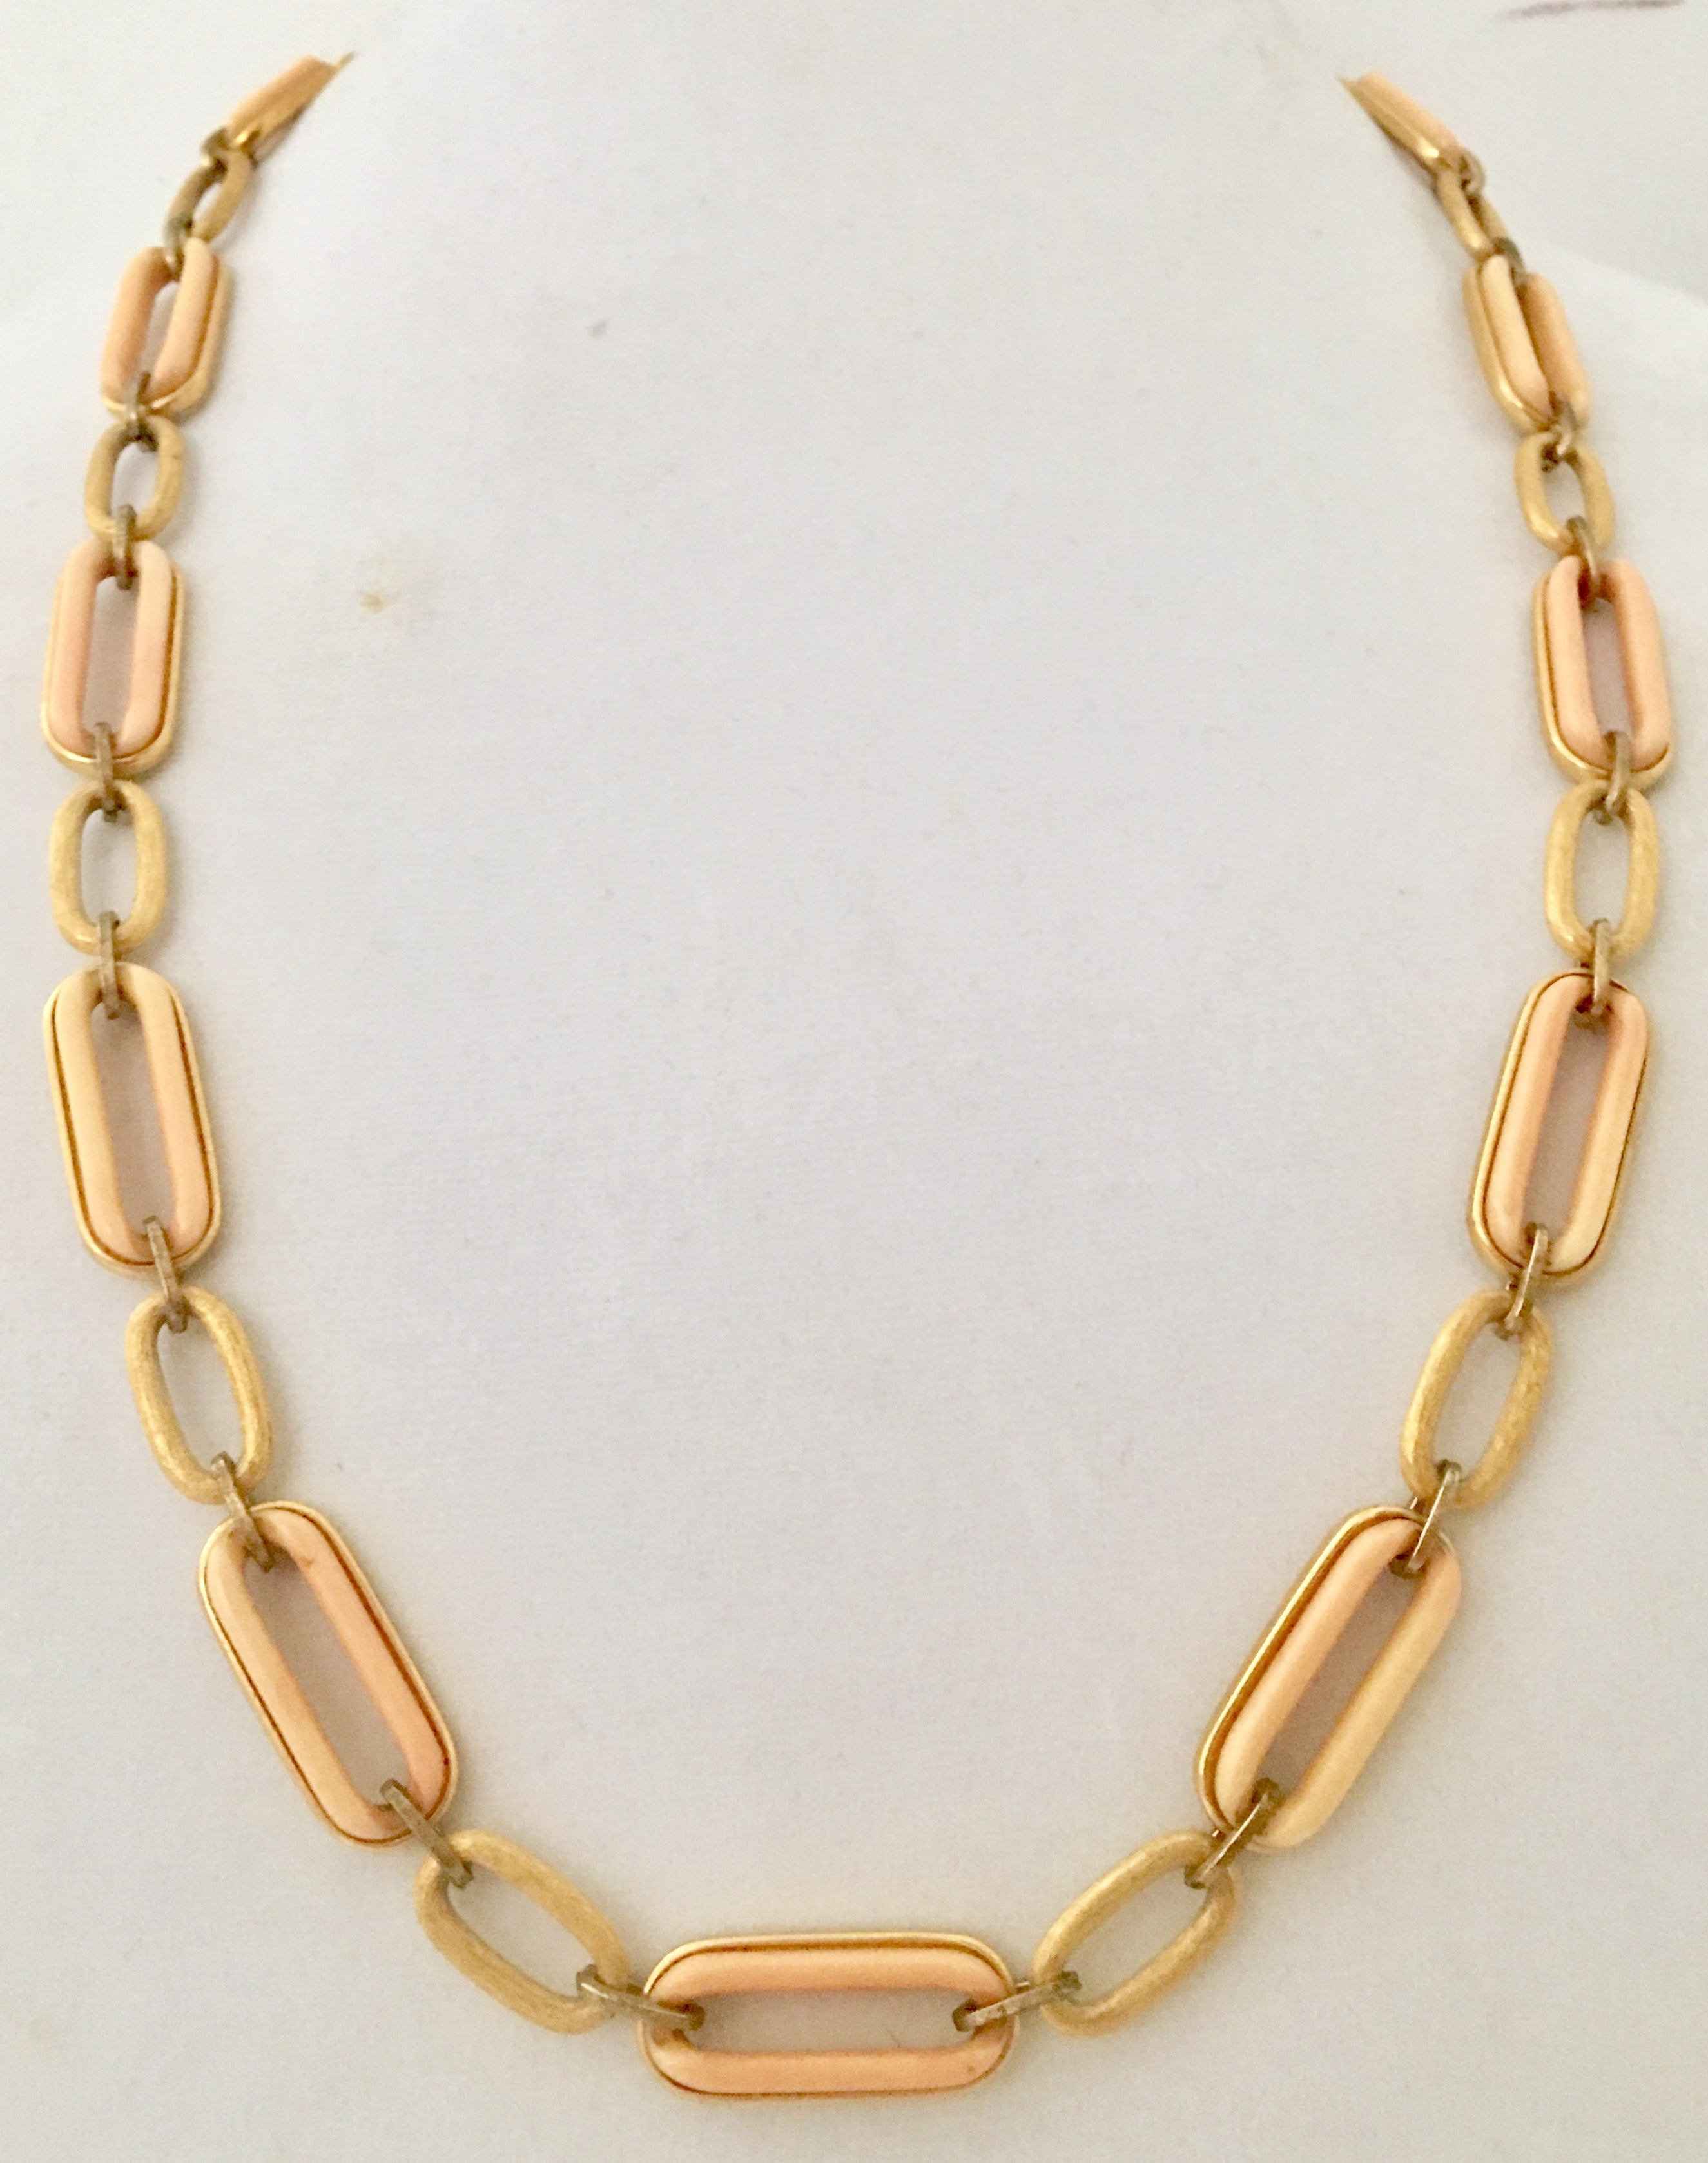 Necklaces, Yellow Gold, Metal, 2017, One Size Givenchy